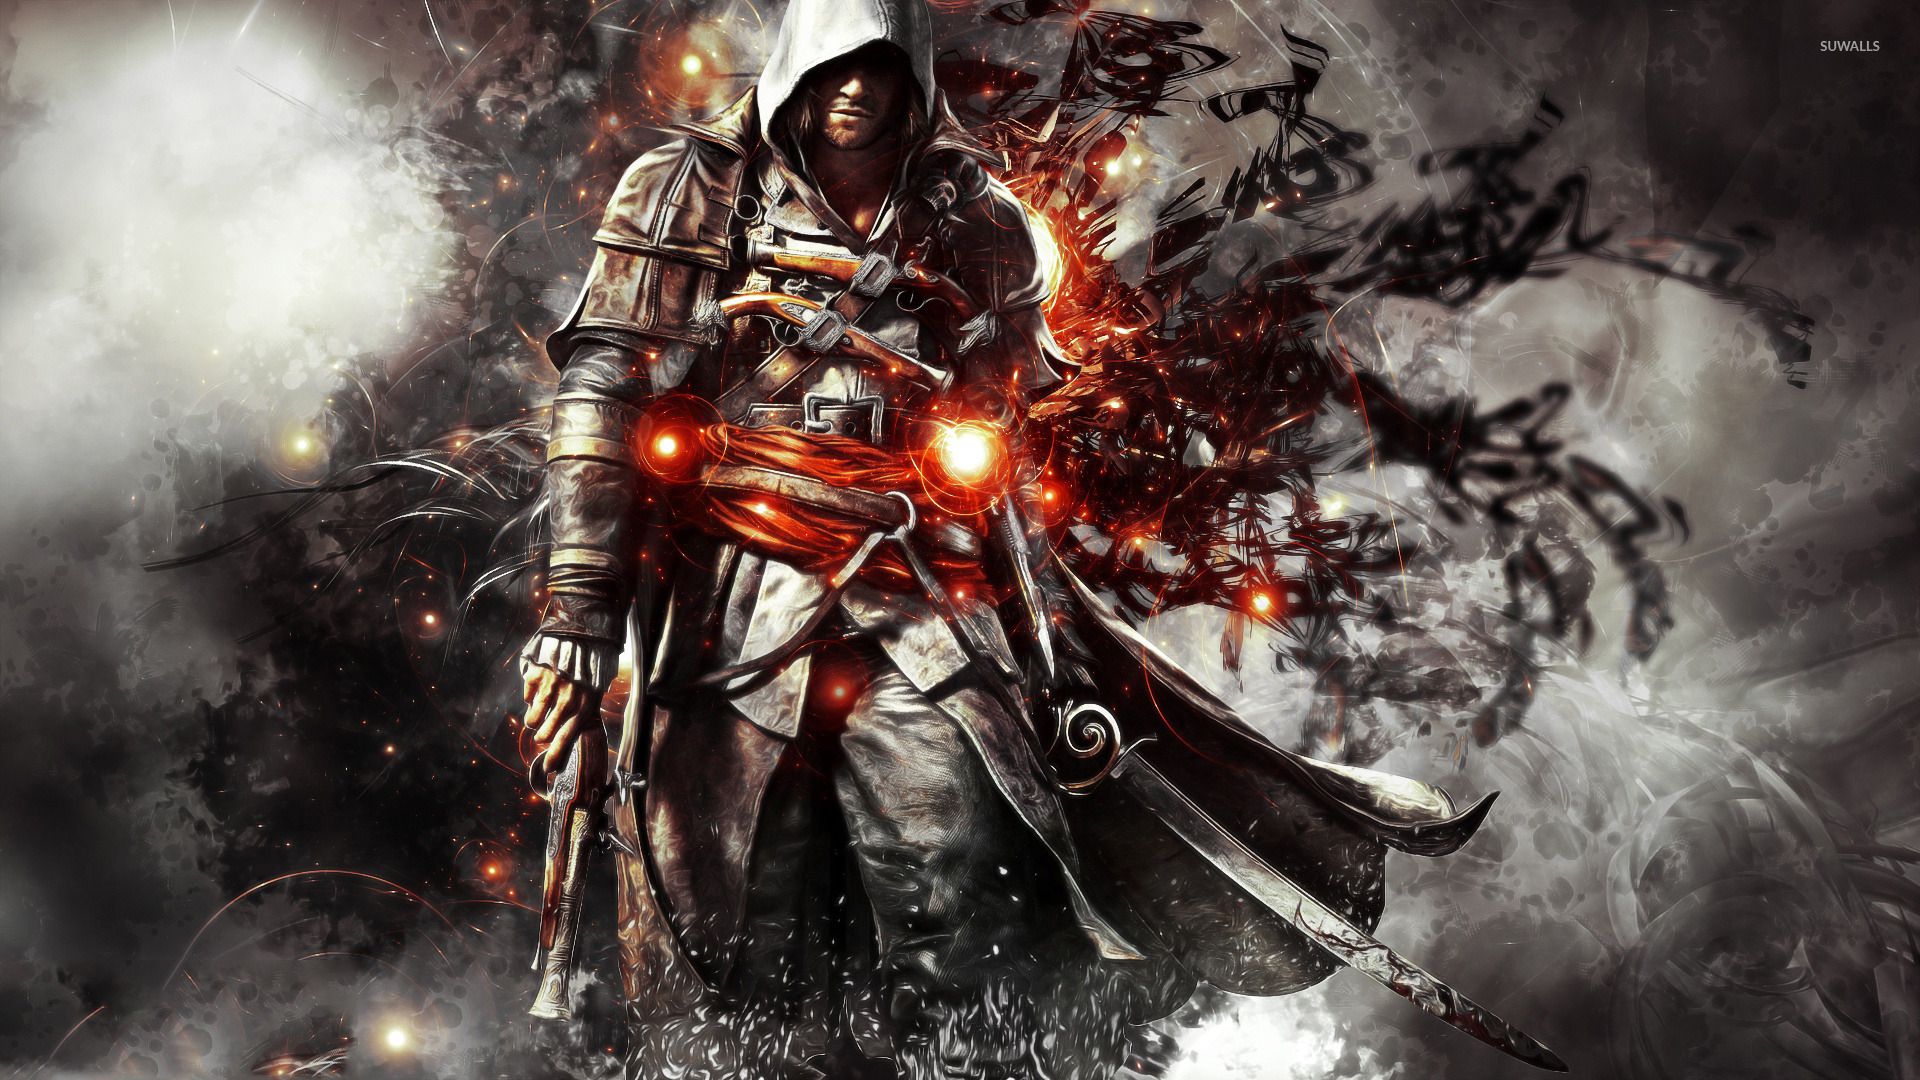 Edward Kenway Assassin S Creed Iv Black Flag Wallpaper Game Wallpapers 21129